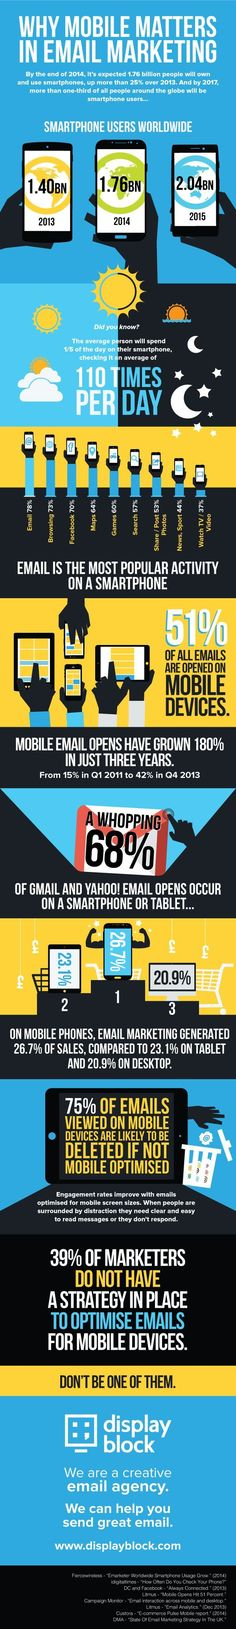 Like it or not, using mobile devices has become second nature to us. The world is well and truly mobile.